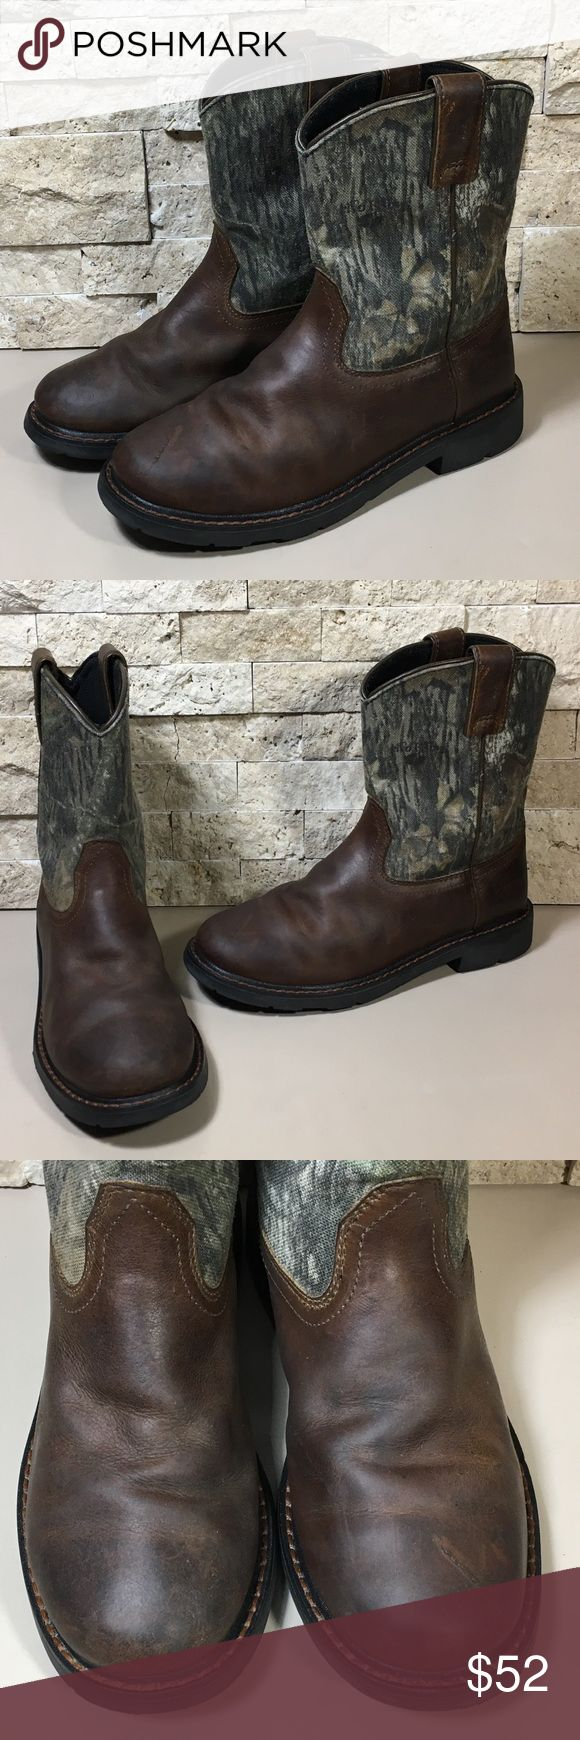 Ariat Siera Boys Cowboy Boots Size 4 Ariat Siera distressed boots. Great preloved condition, please see photos. Boy's size 4, style 10006747. Ariat Shoes Boots